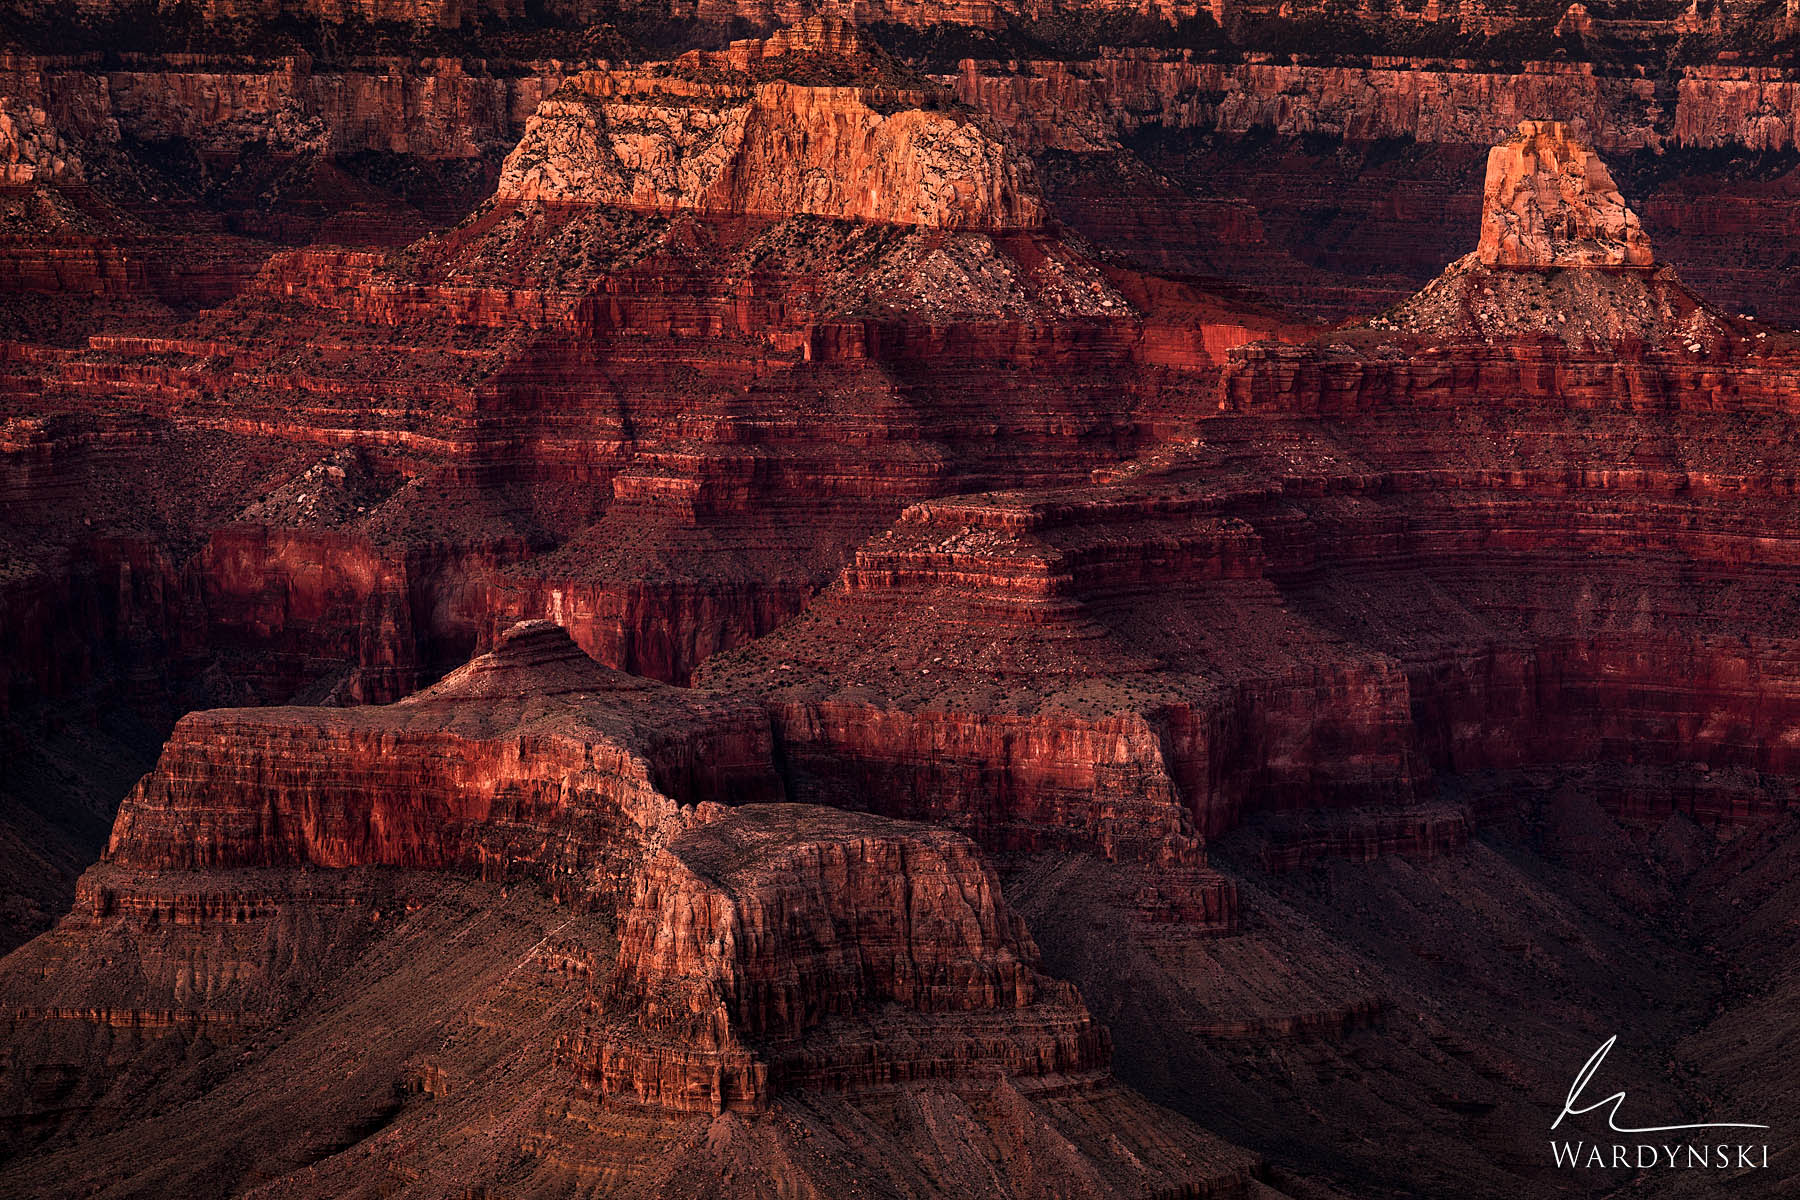 Fine Art Print | Limited Edition of 50  The Grand Canyon is one of the most impressive sights in the Southwest. There is no way...